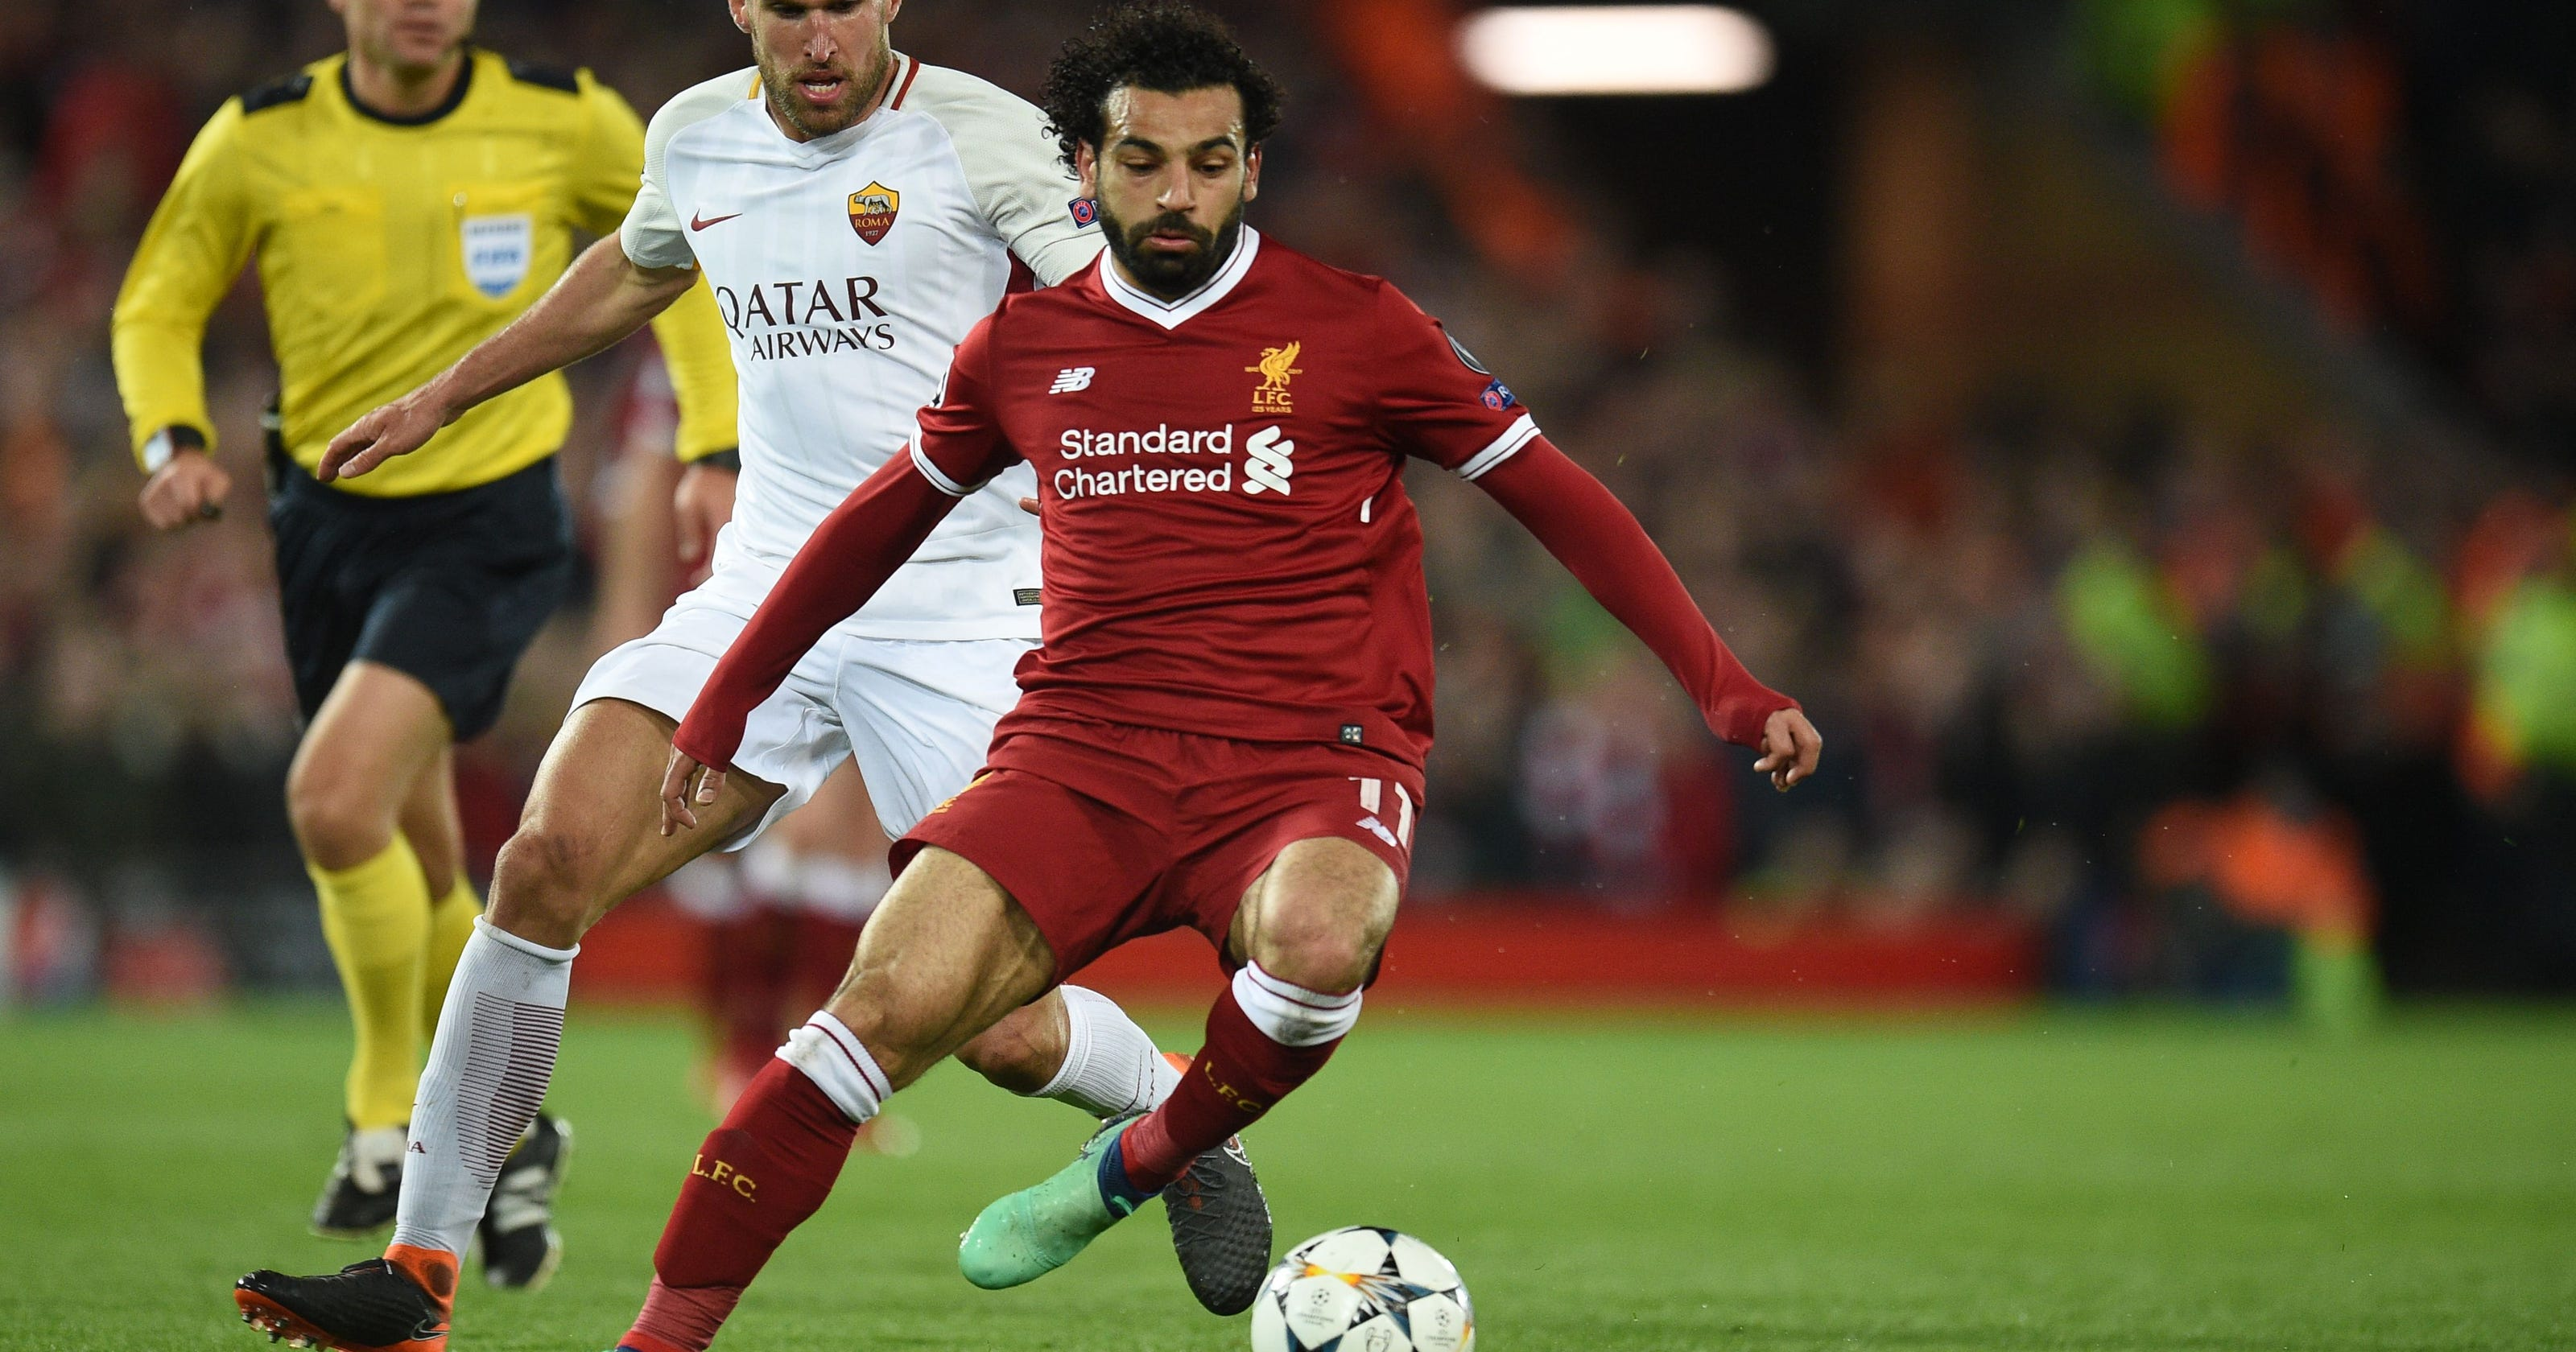 b1952ae9b810 Champions League soccer: Salah fires Liverpool to brink of final